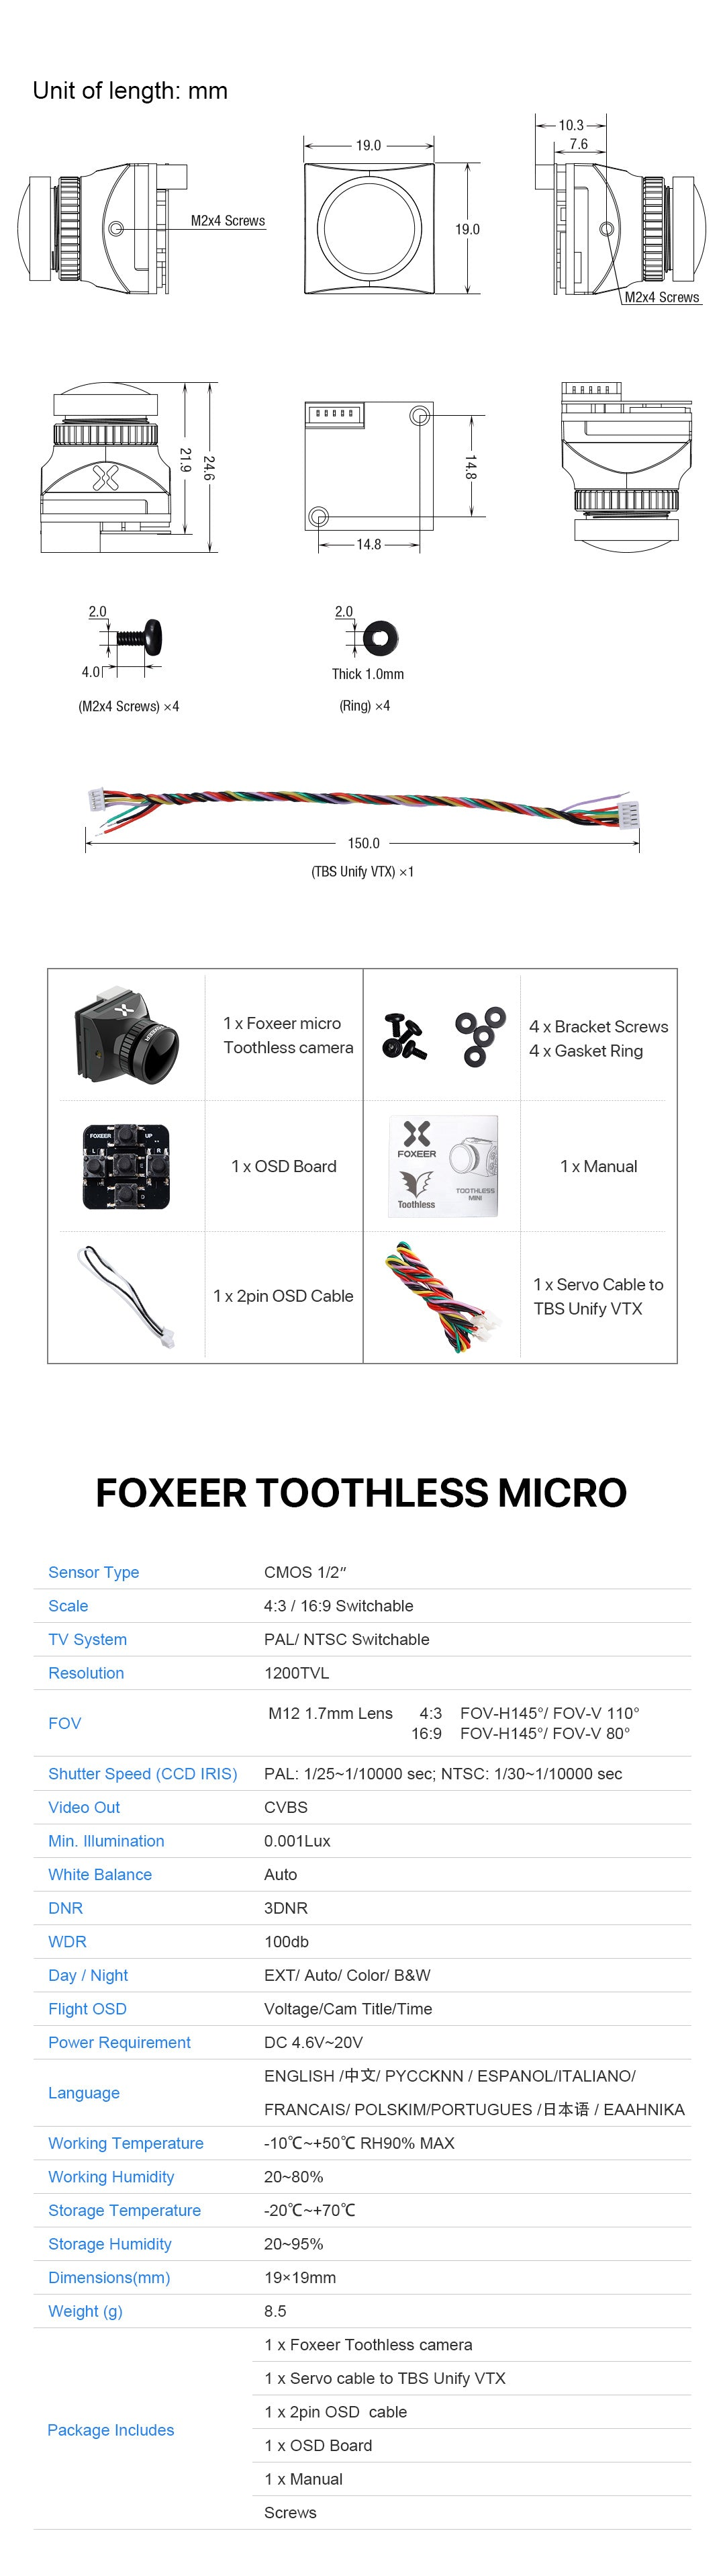 Foxeer Toothless Micro FPV Camera